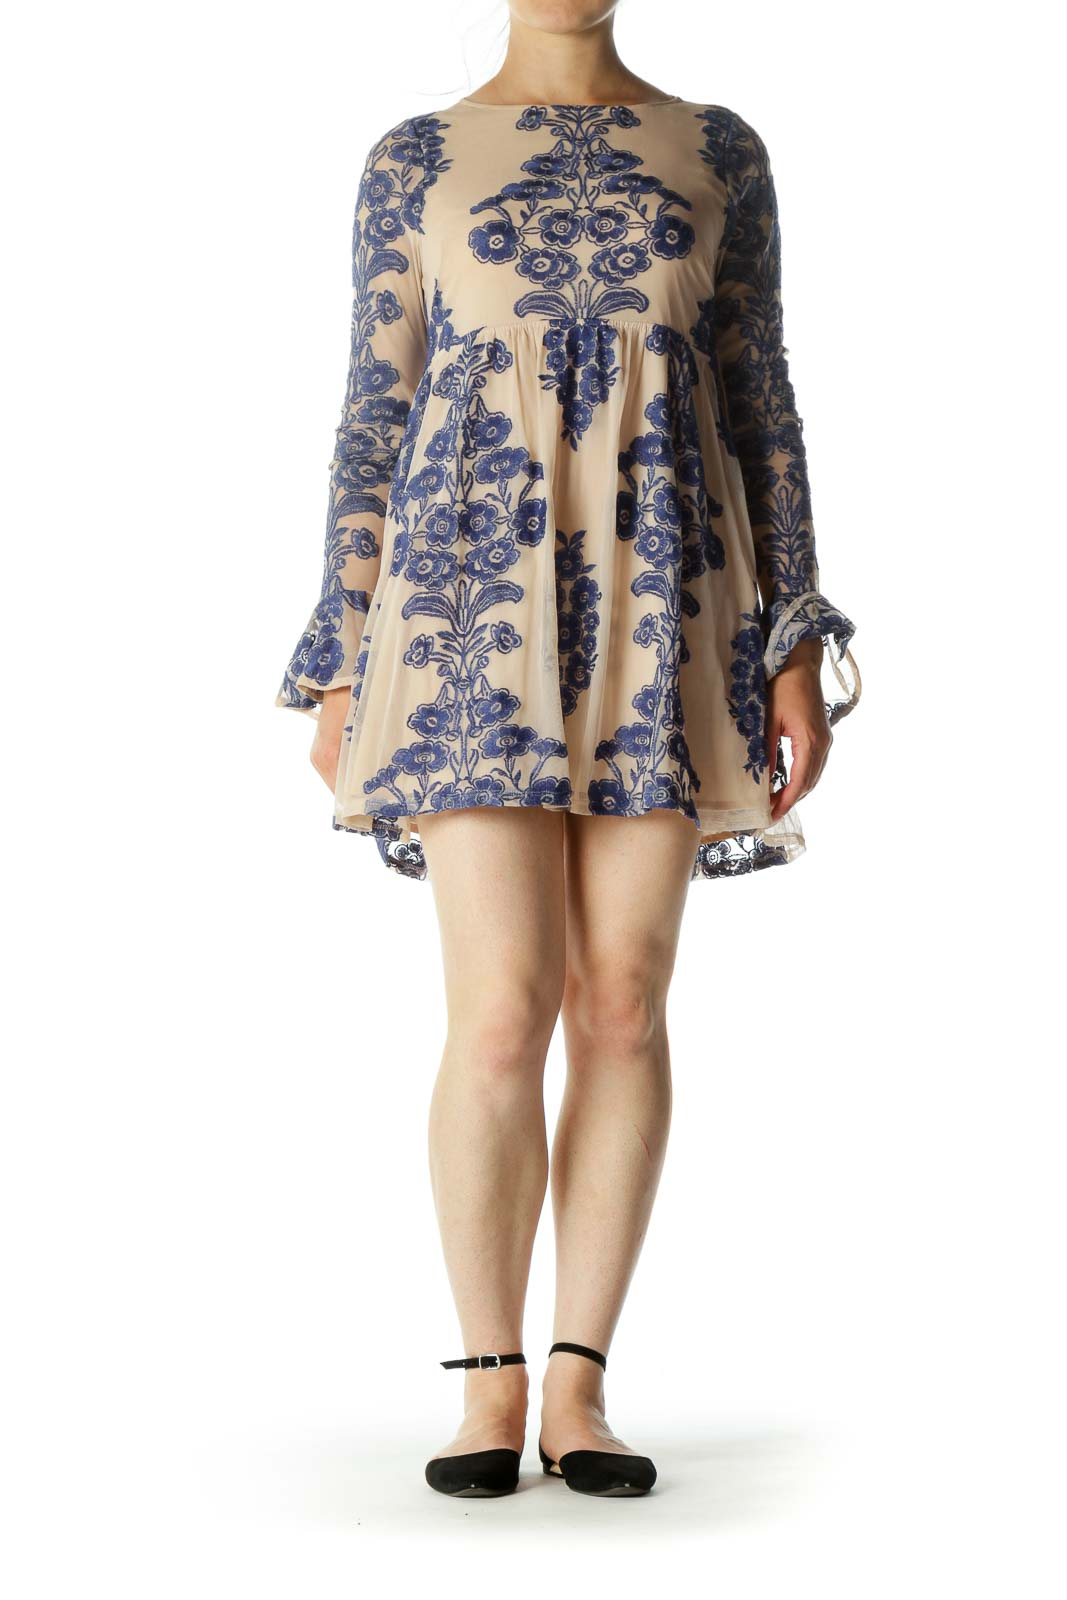 Blue Beige Round Neck Floral Embroidery Lace Body Cocktail Dress